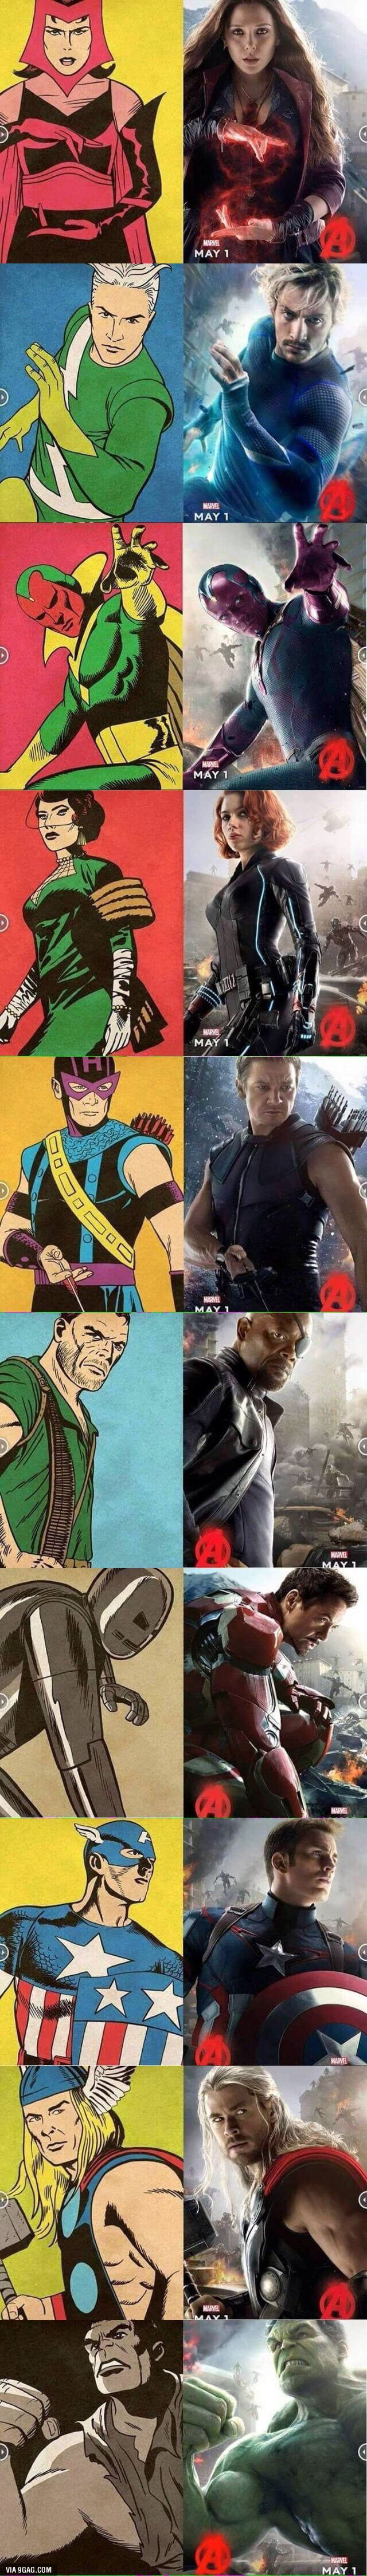 "The 1st time I saw this, I thought, ""oh yeah look old and new pictures of the Marvel characters in AoU."" Now I'm looking at it and I'm realizing that the new and old characters are in the same poses. Did Marvel dig up poses and match the characters on purpose? If so, I applaud you, Marvel. Still mad at you for Pietro, though. X("